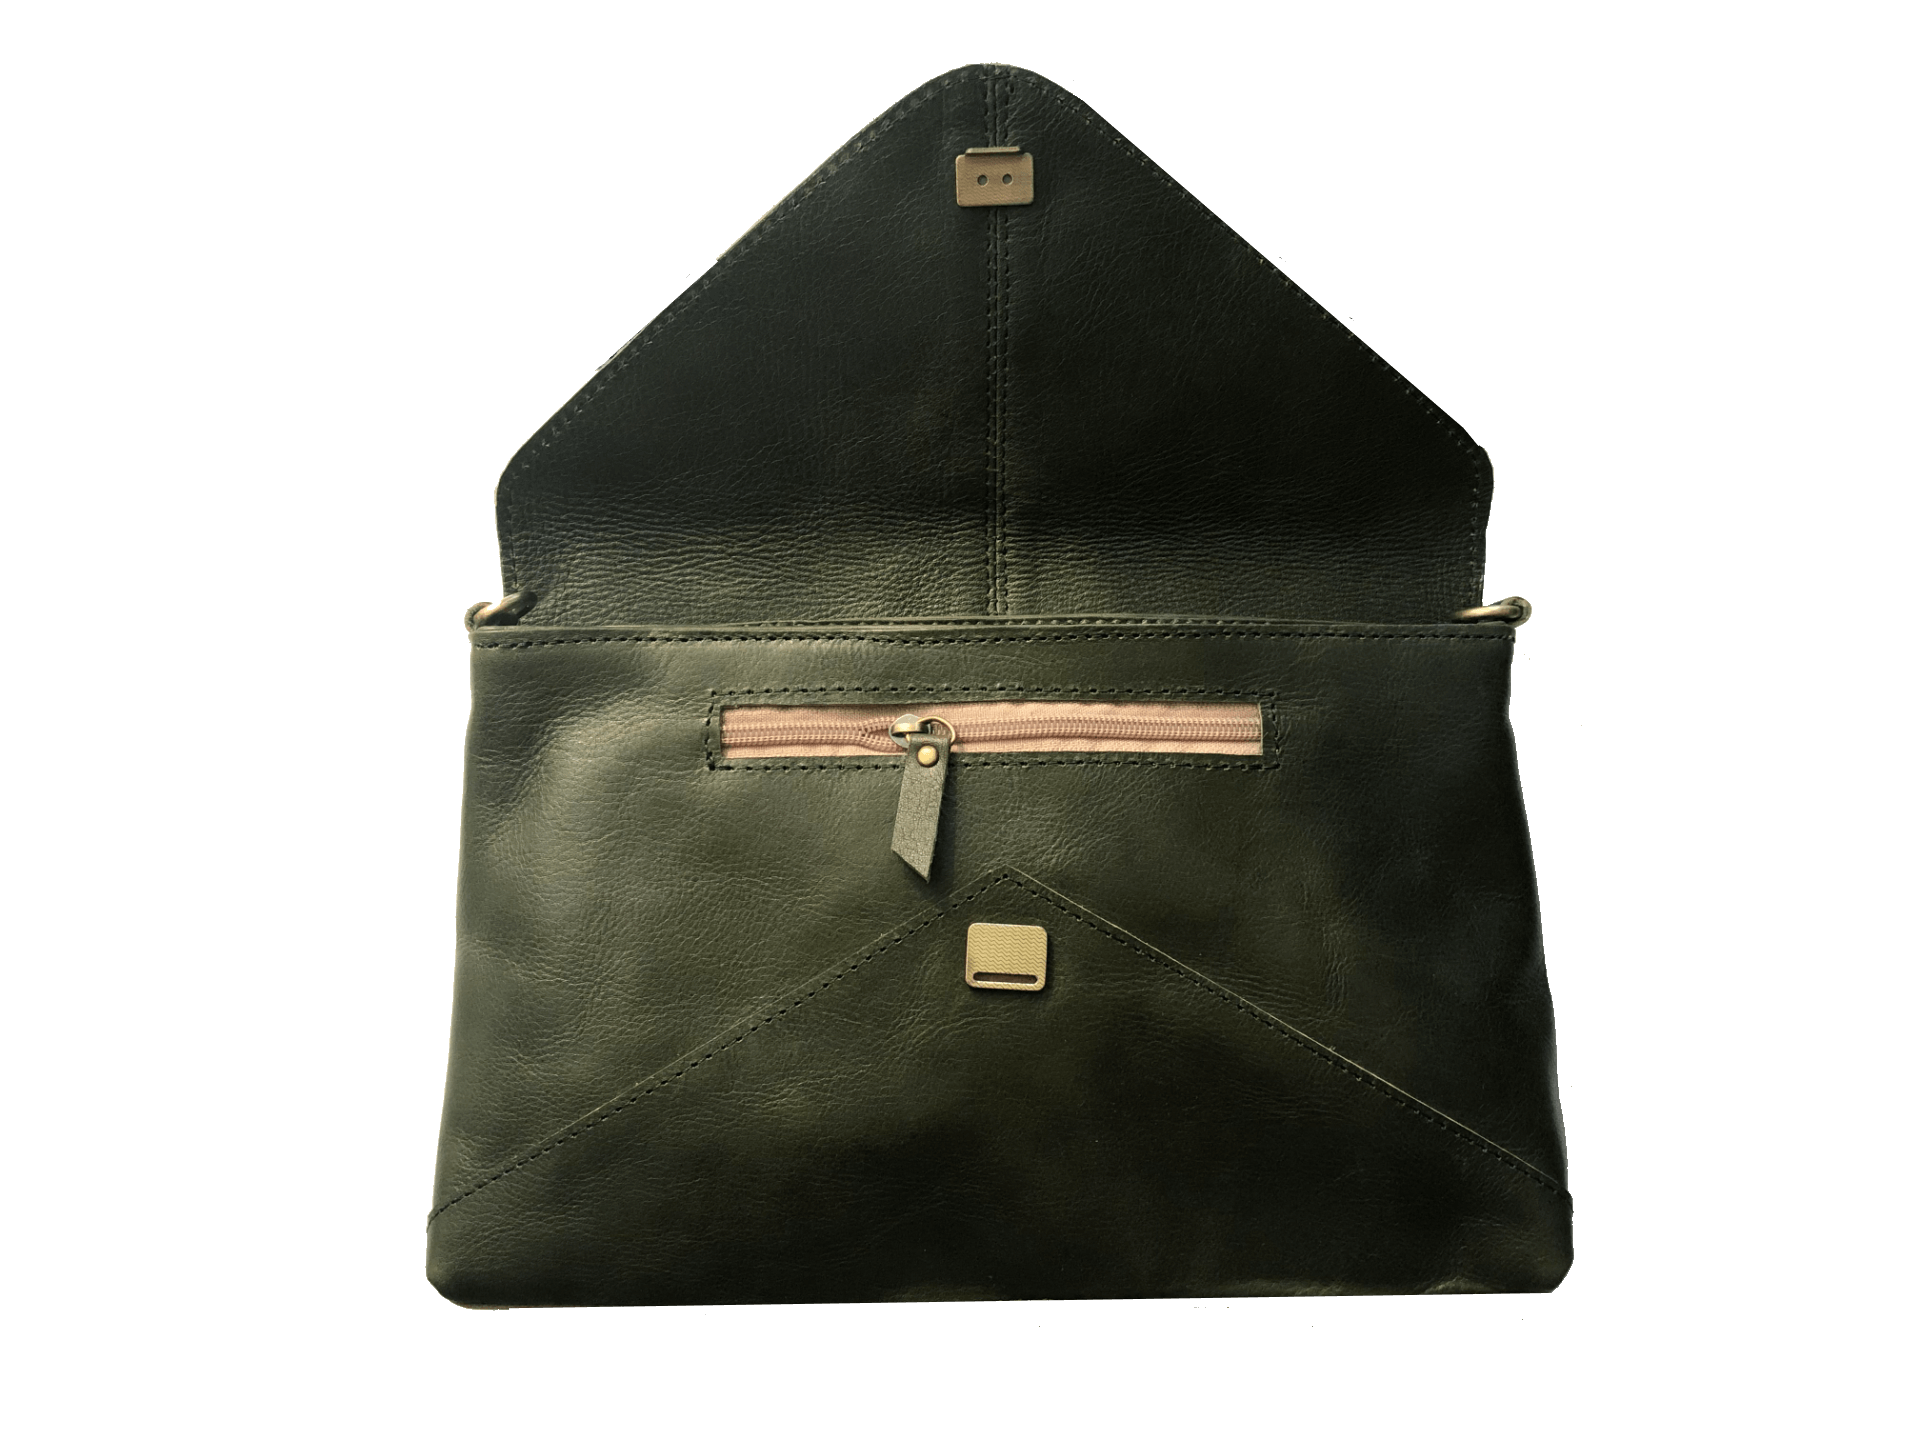 Madrid Olive Envelope Pouch and Cross Body Bag